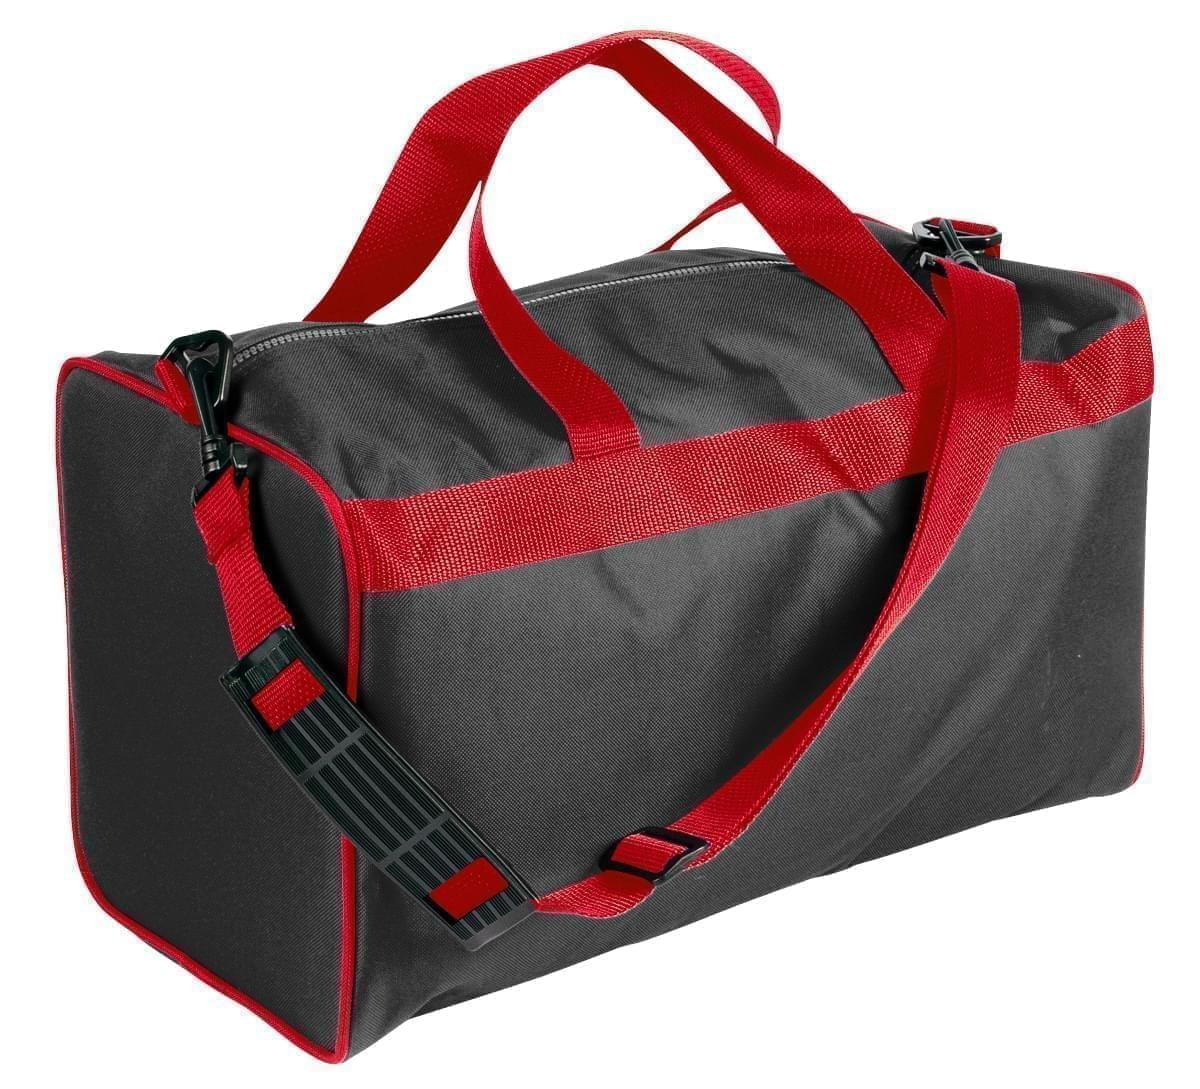 USA Made Nylon Poly Weekend Duffles, Black-Red, WLKX31AAO2